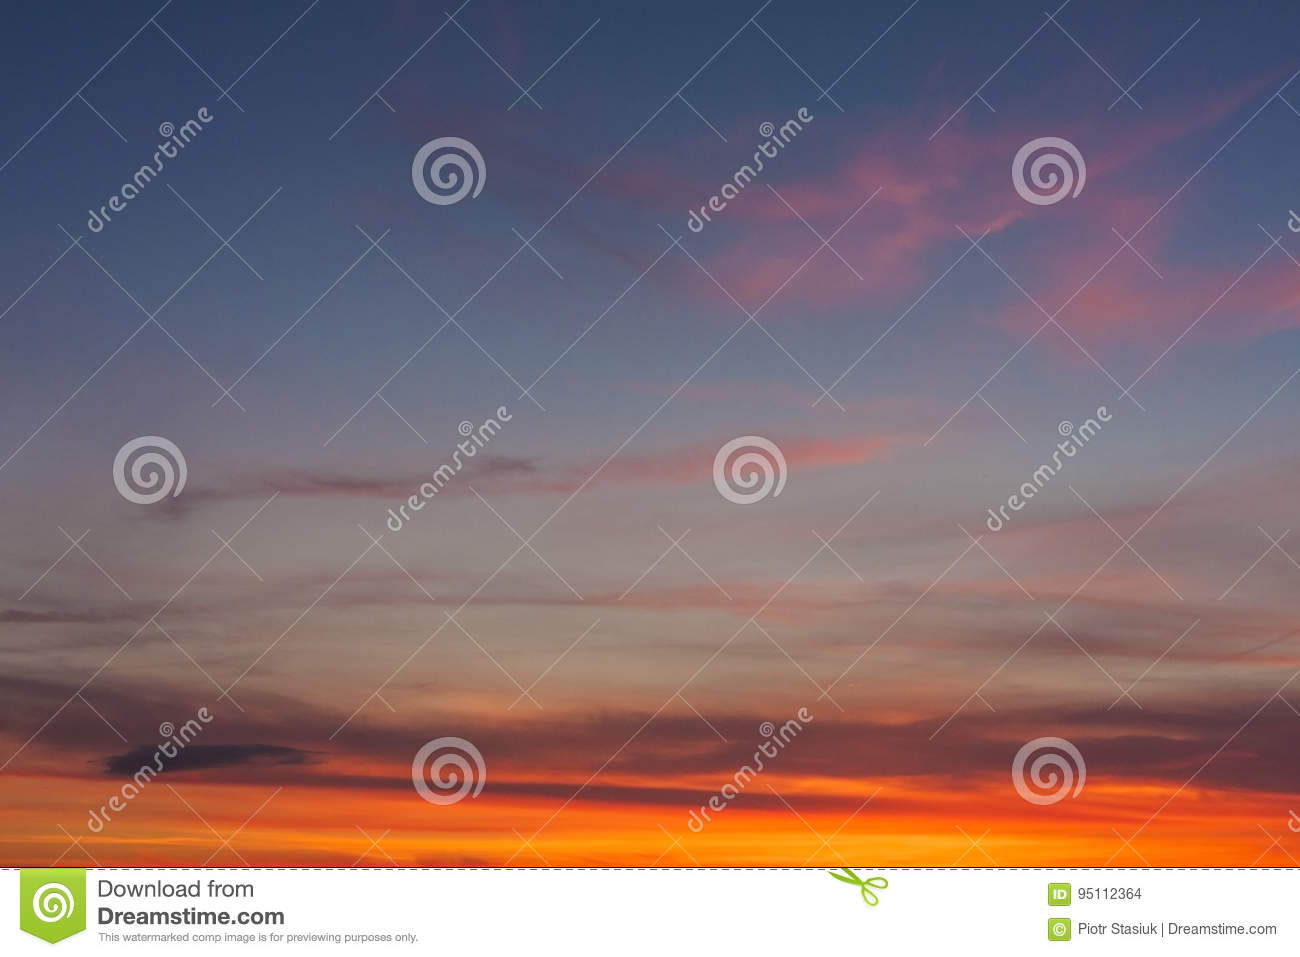 Sunset sky for backgrounds